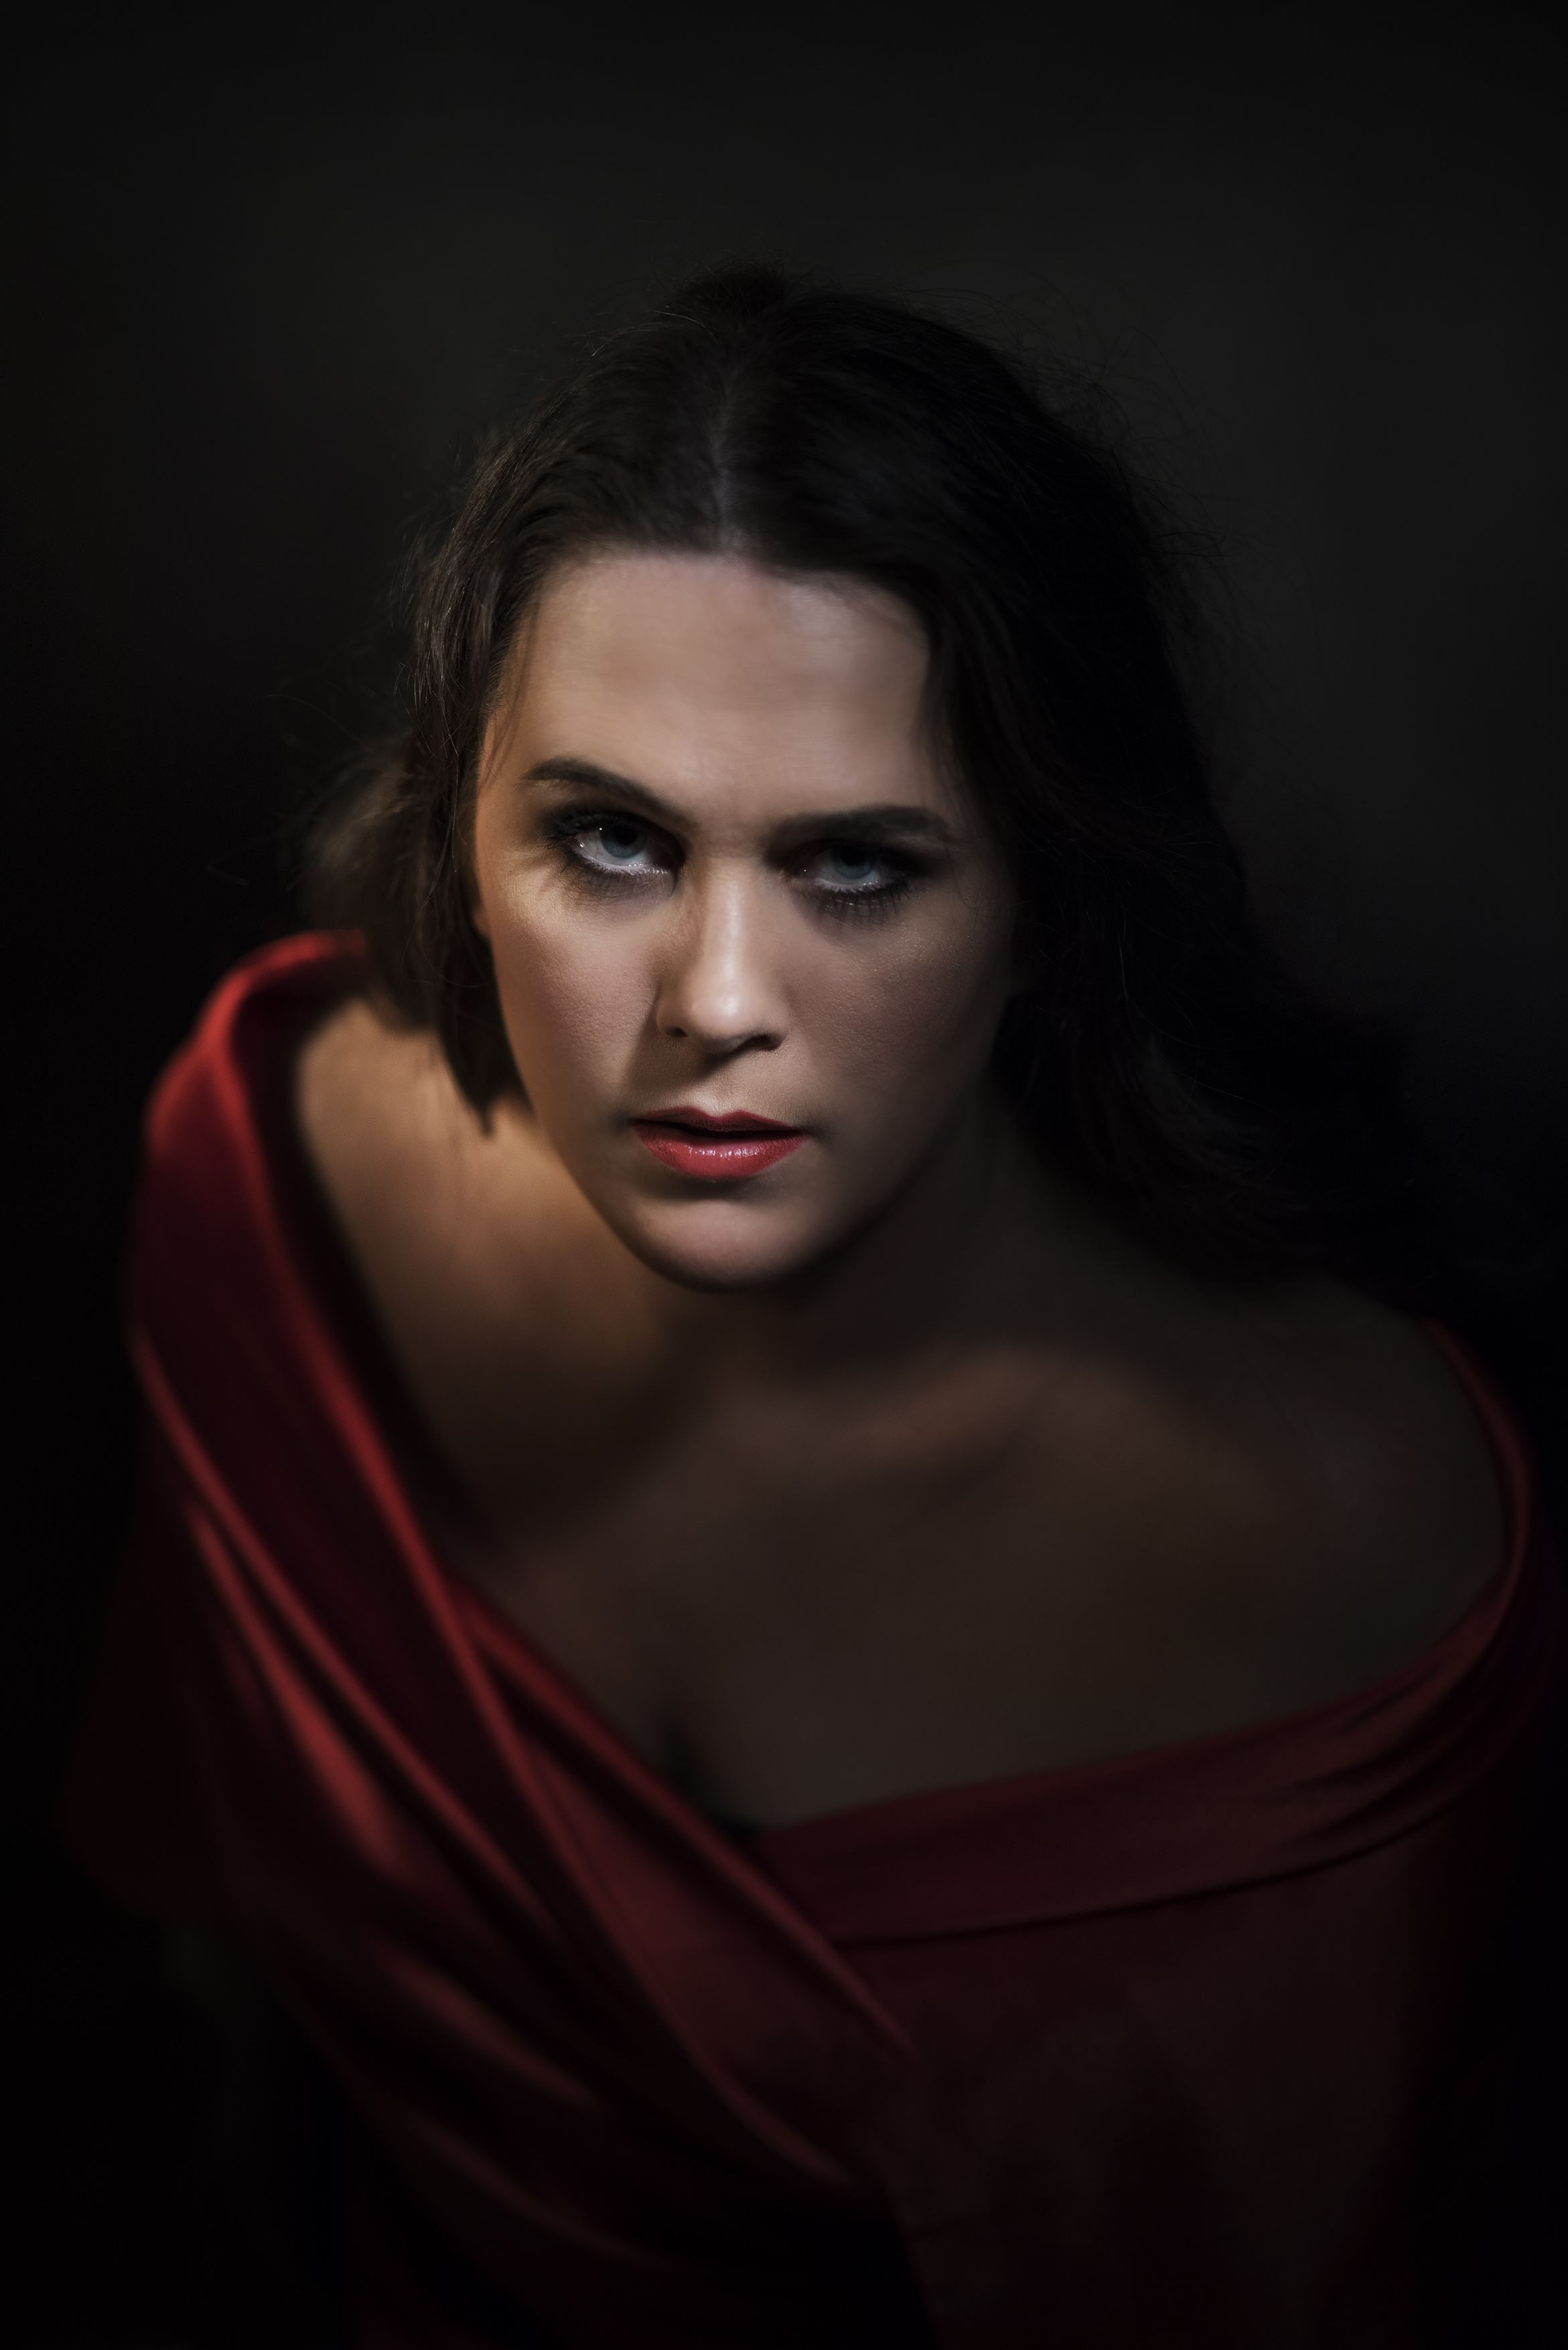 © Nordnorsk Opera og Symfoniorkester, Tosca - Love, intrigue and drama - Arctic Philharmonic Orcestra